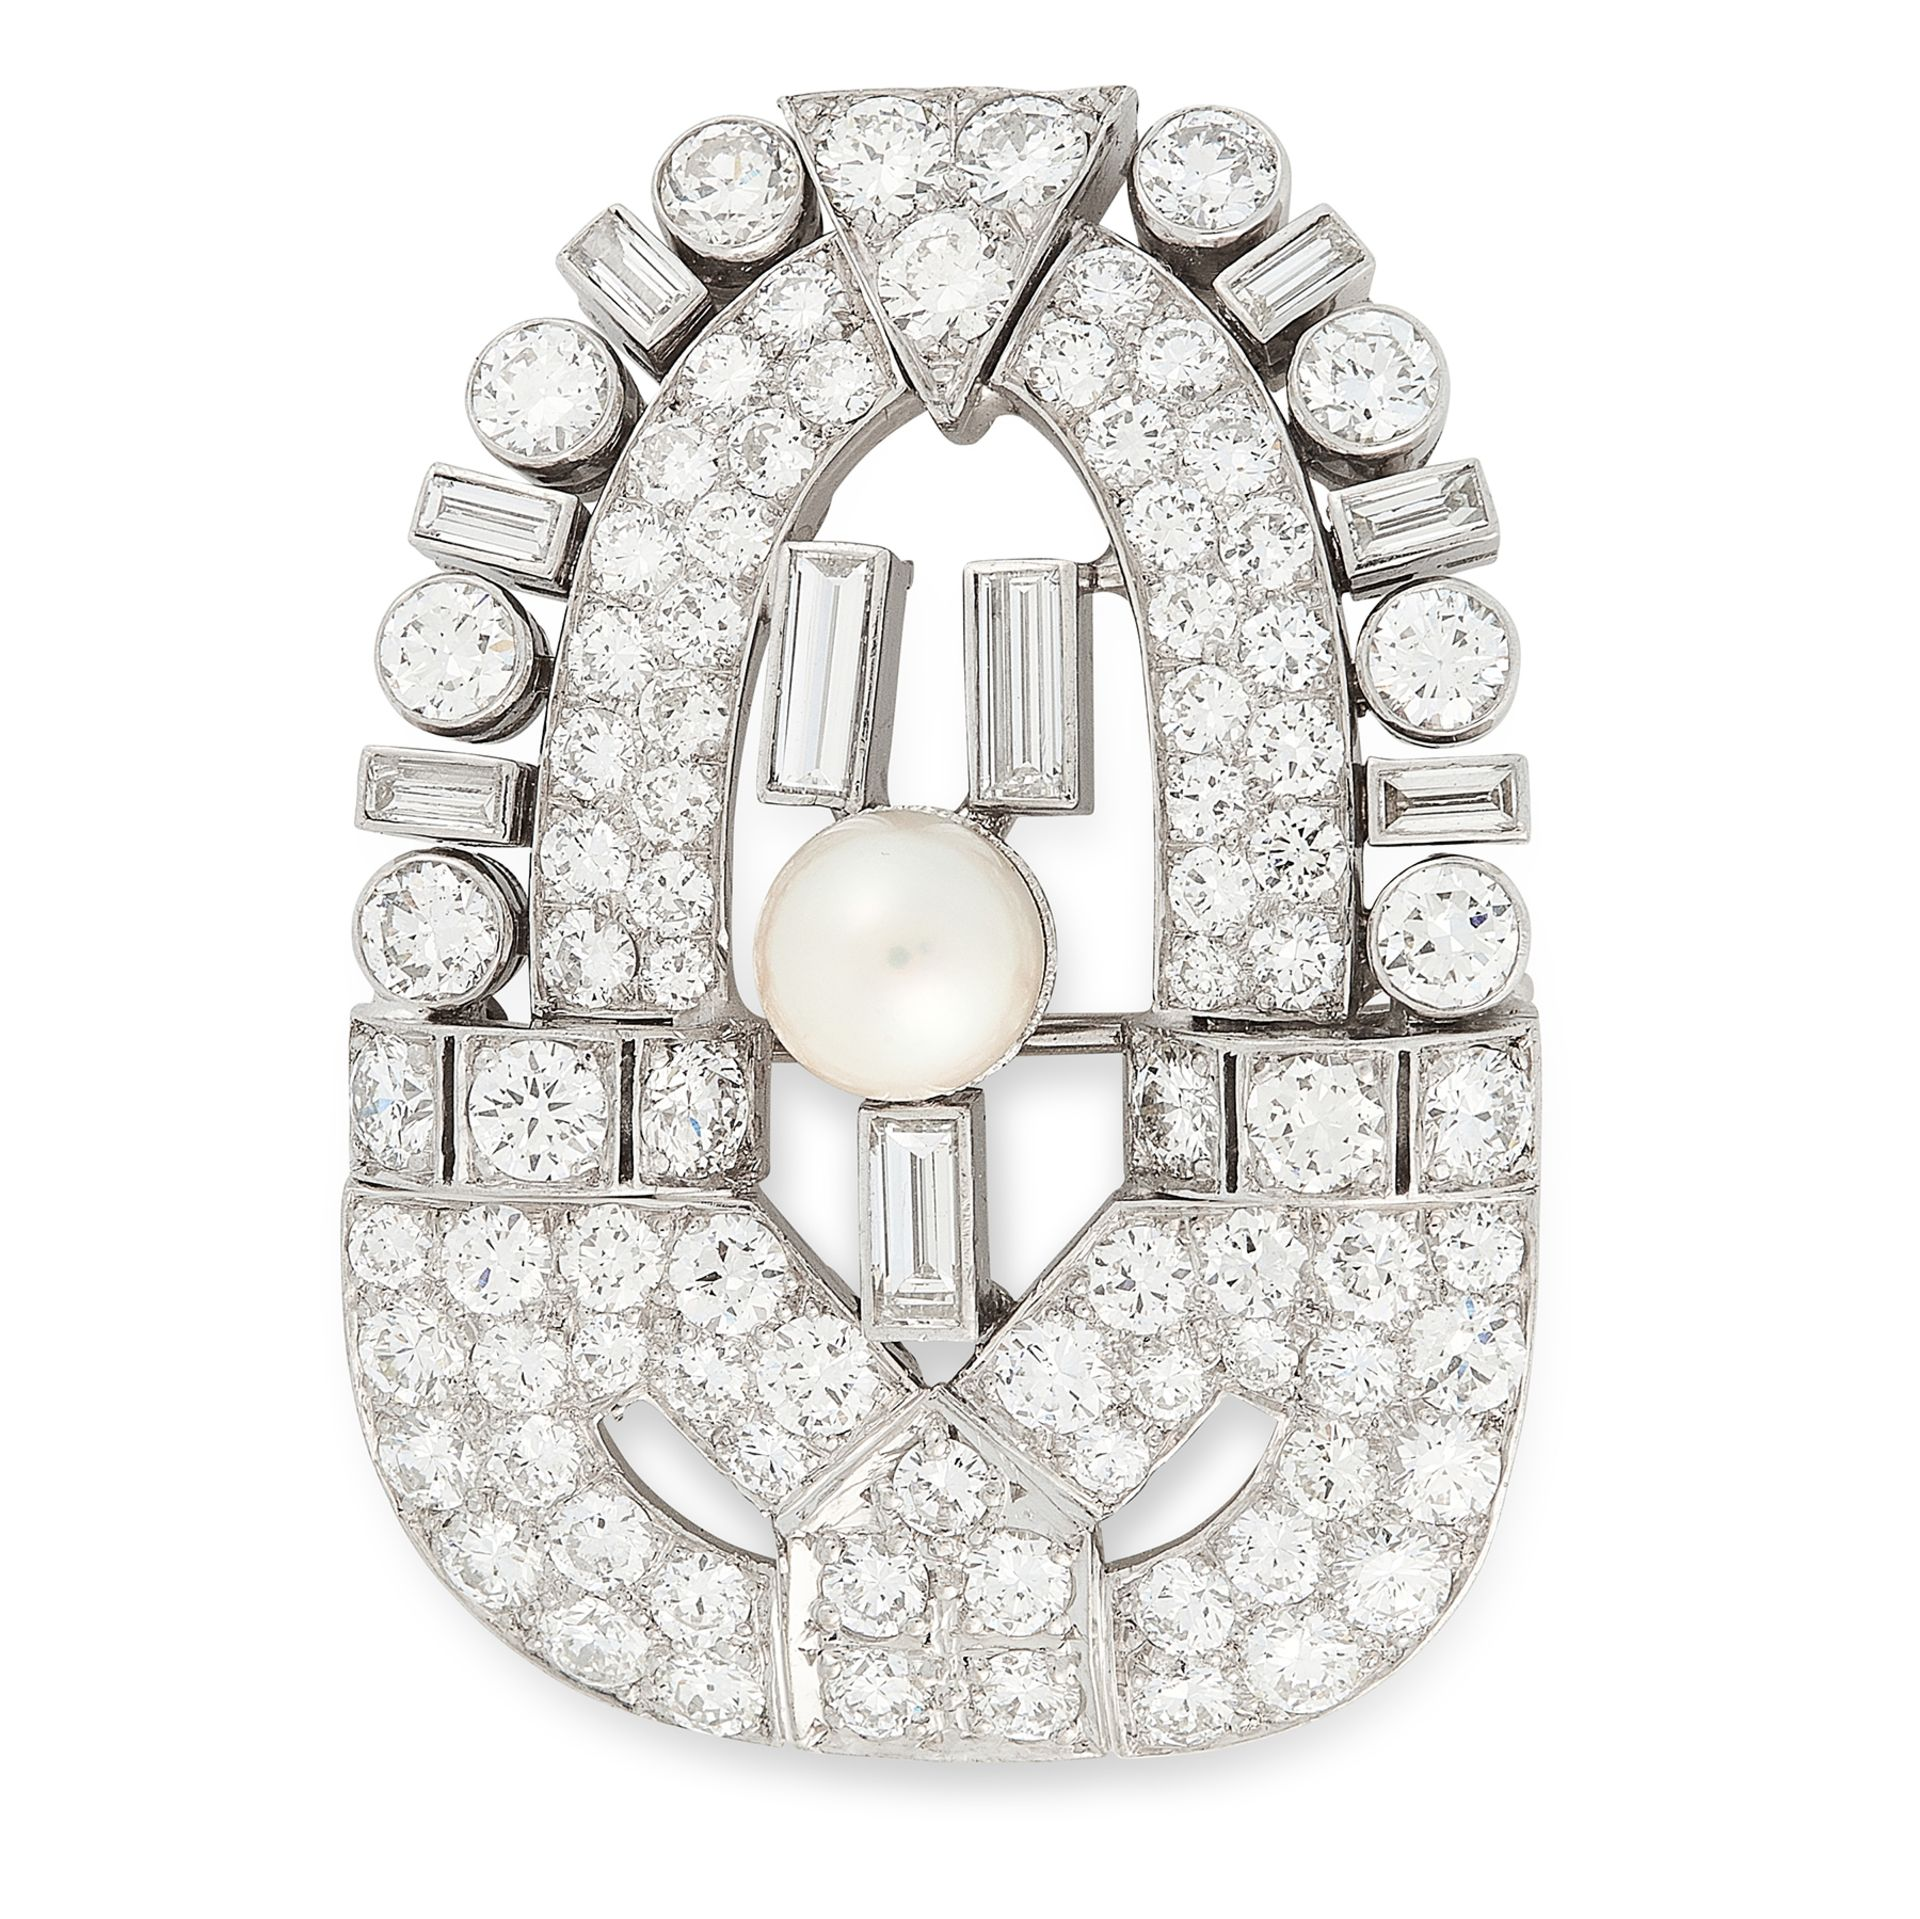 Los 4 - A PEARL AND DIAMOND BROOCH, CIRCA 1950 of shield design, set at the centre with a pearl of 6.9mm,